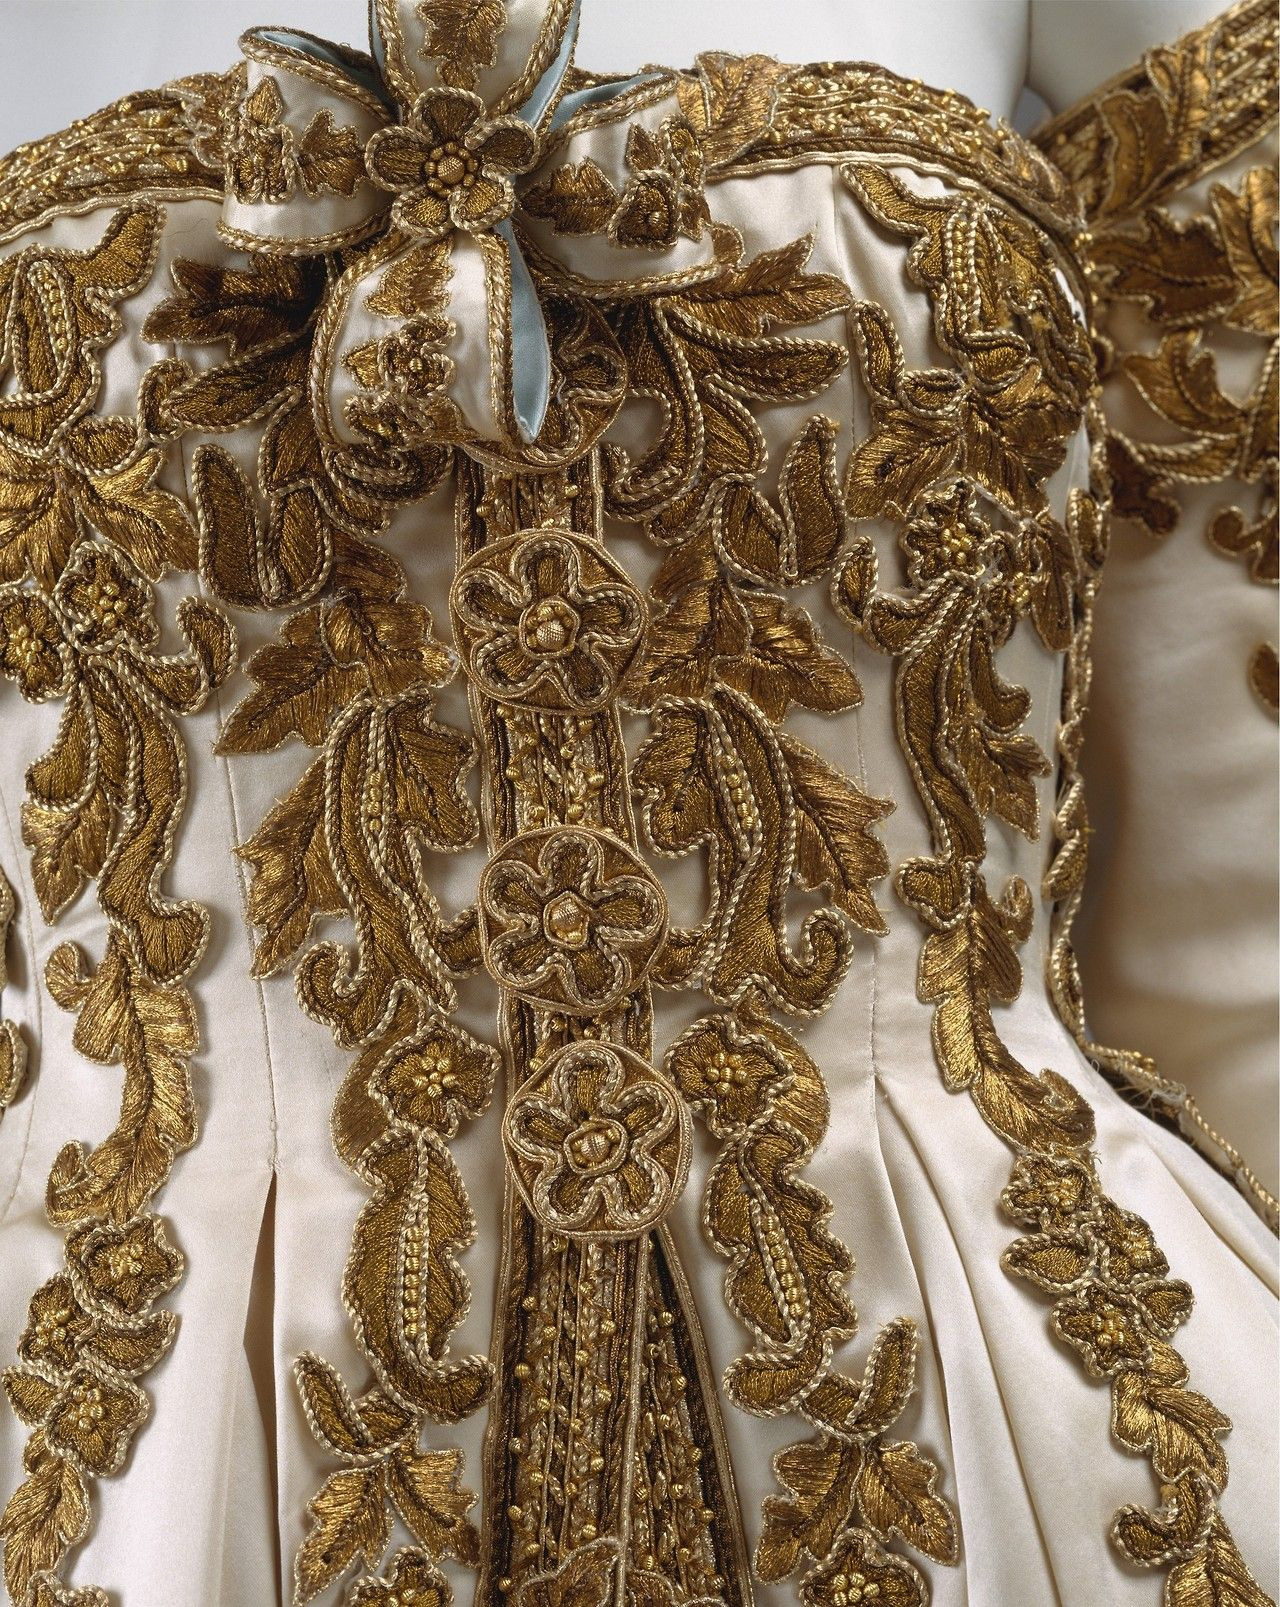 Evening Ensemble (Detail)   Chanel designed by Karl Lagerfeld  1990